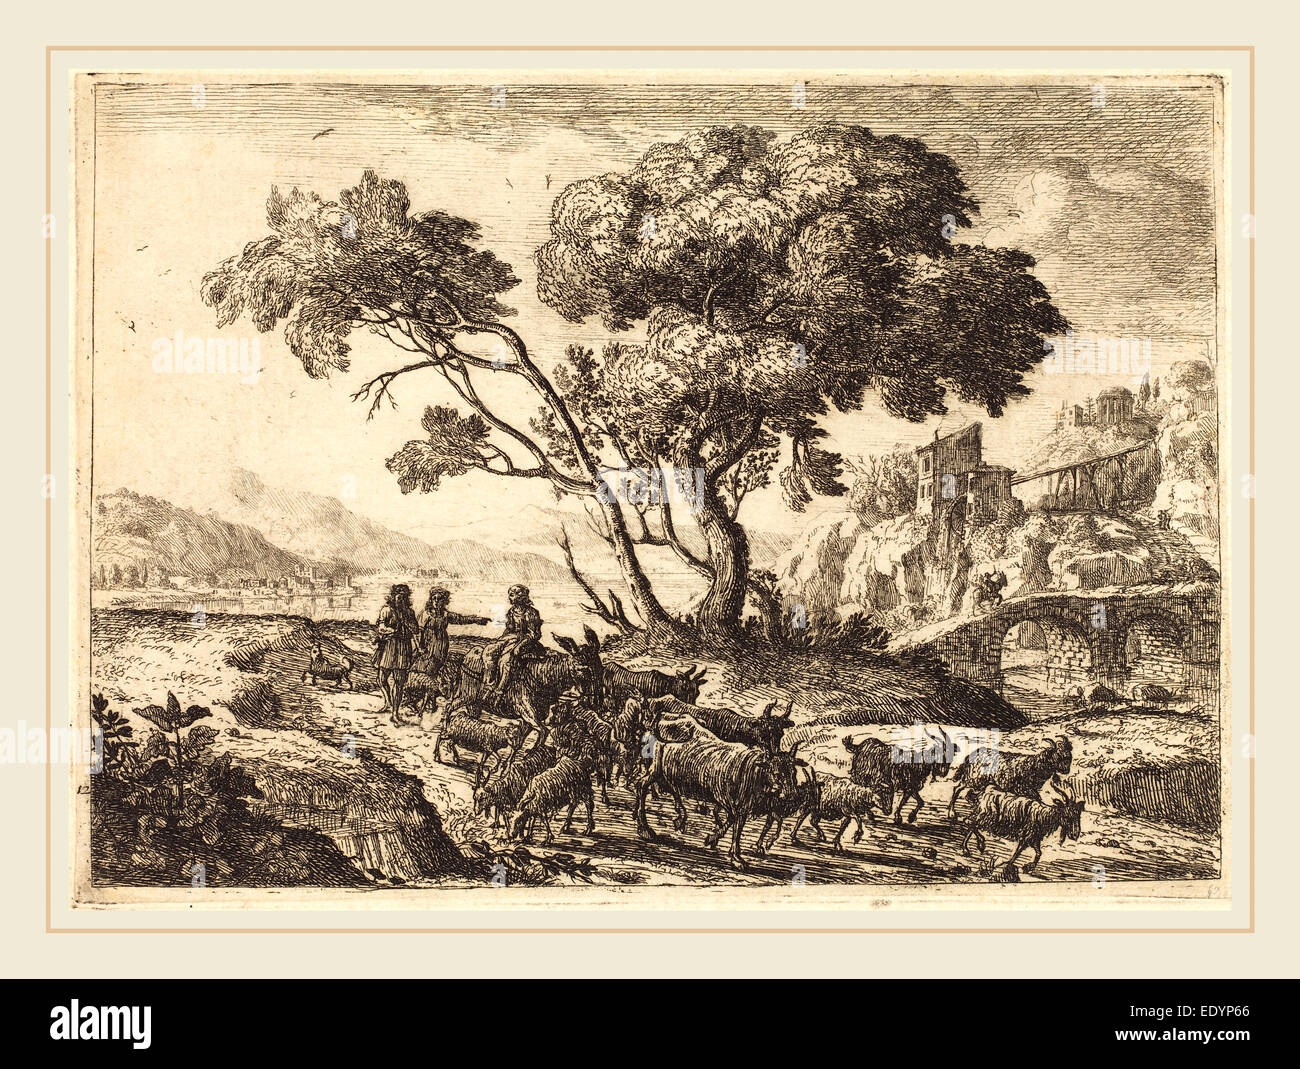 Claude Lorrain, French (1604-1605-1682), Departure for the Fields, 1638-1641, etching in black on laid paper - Stock Image